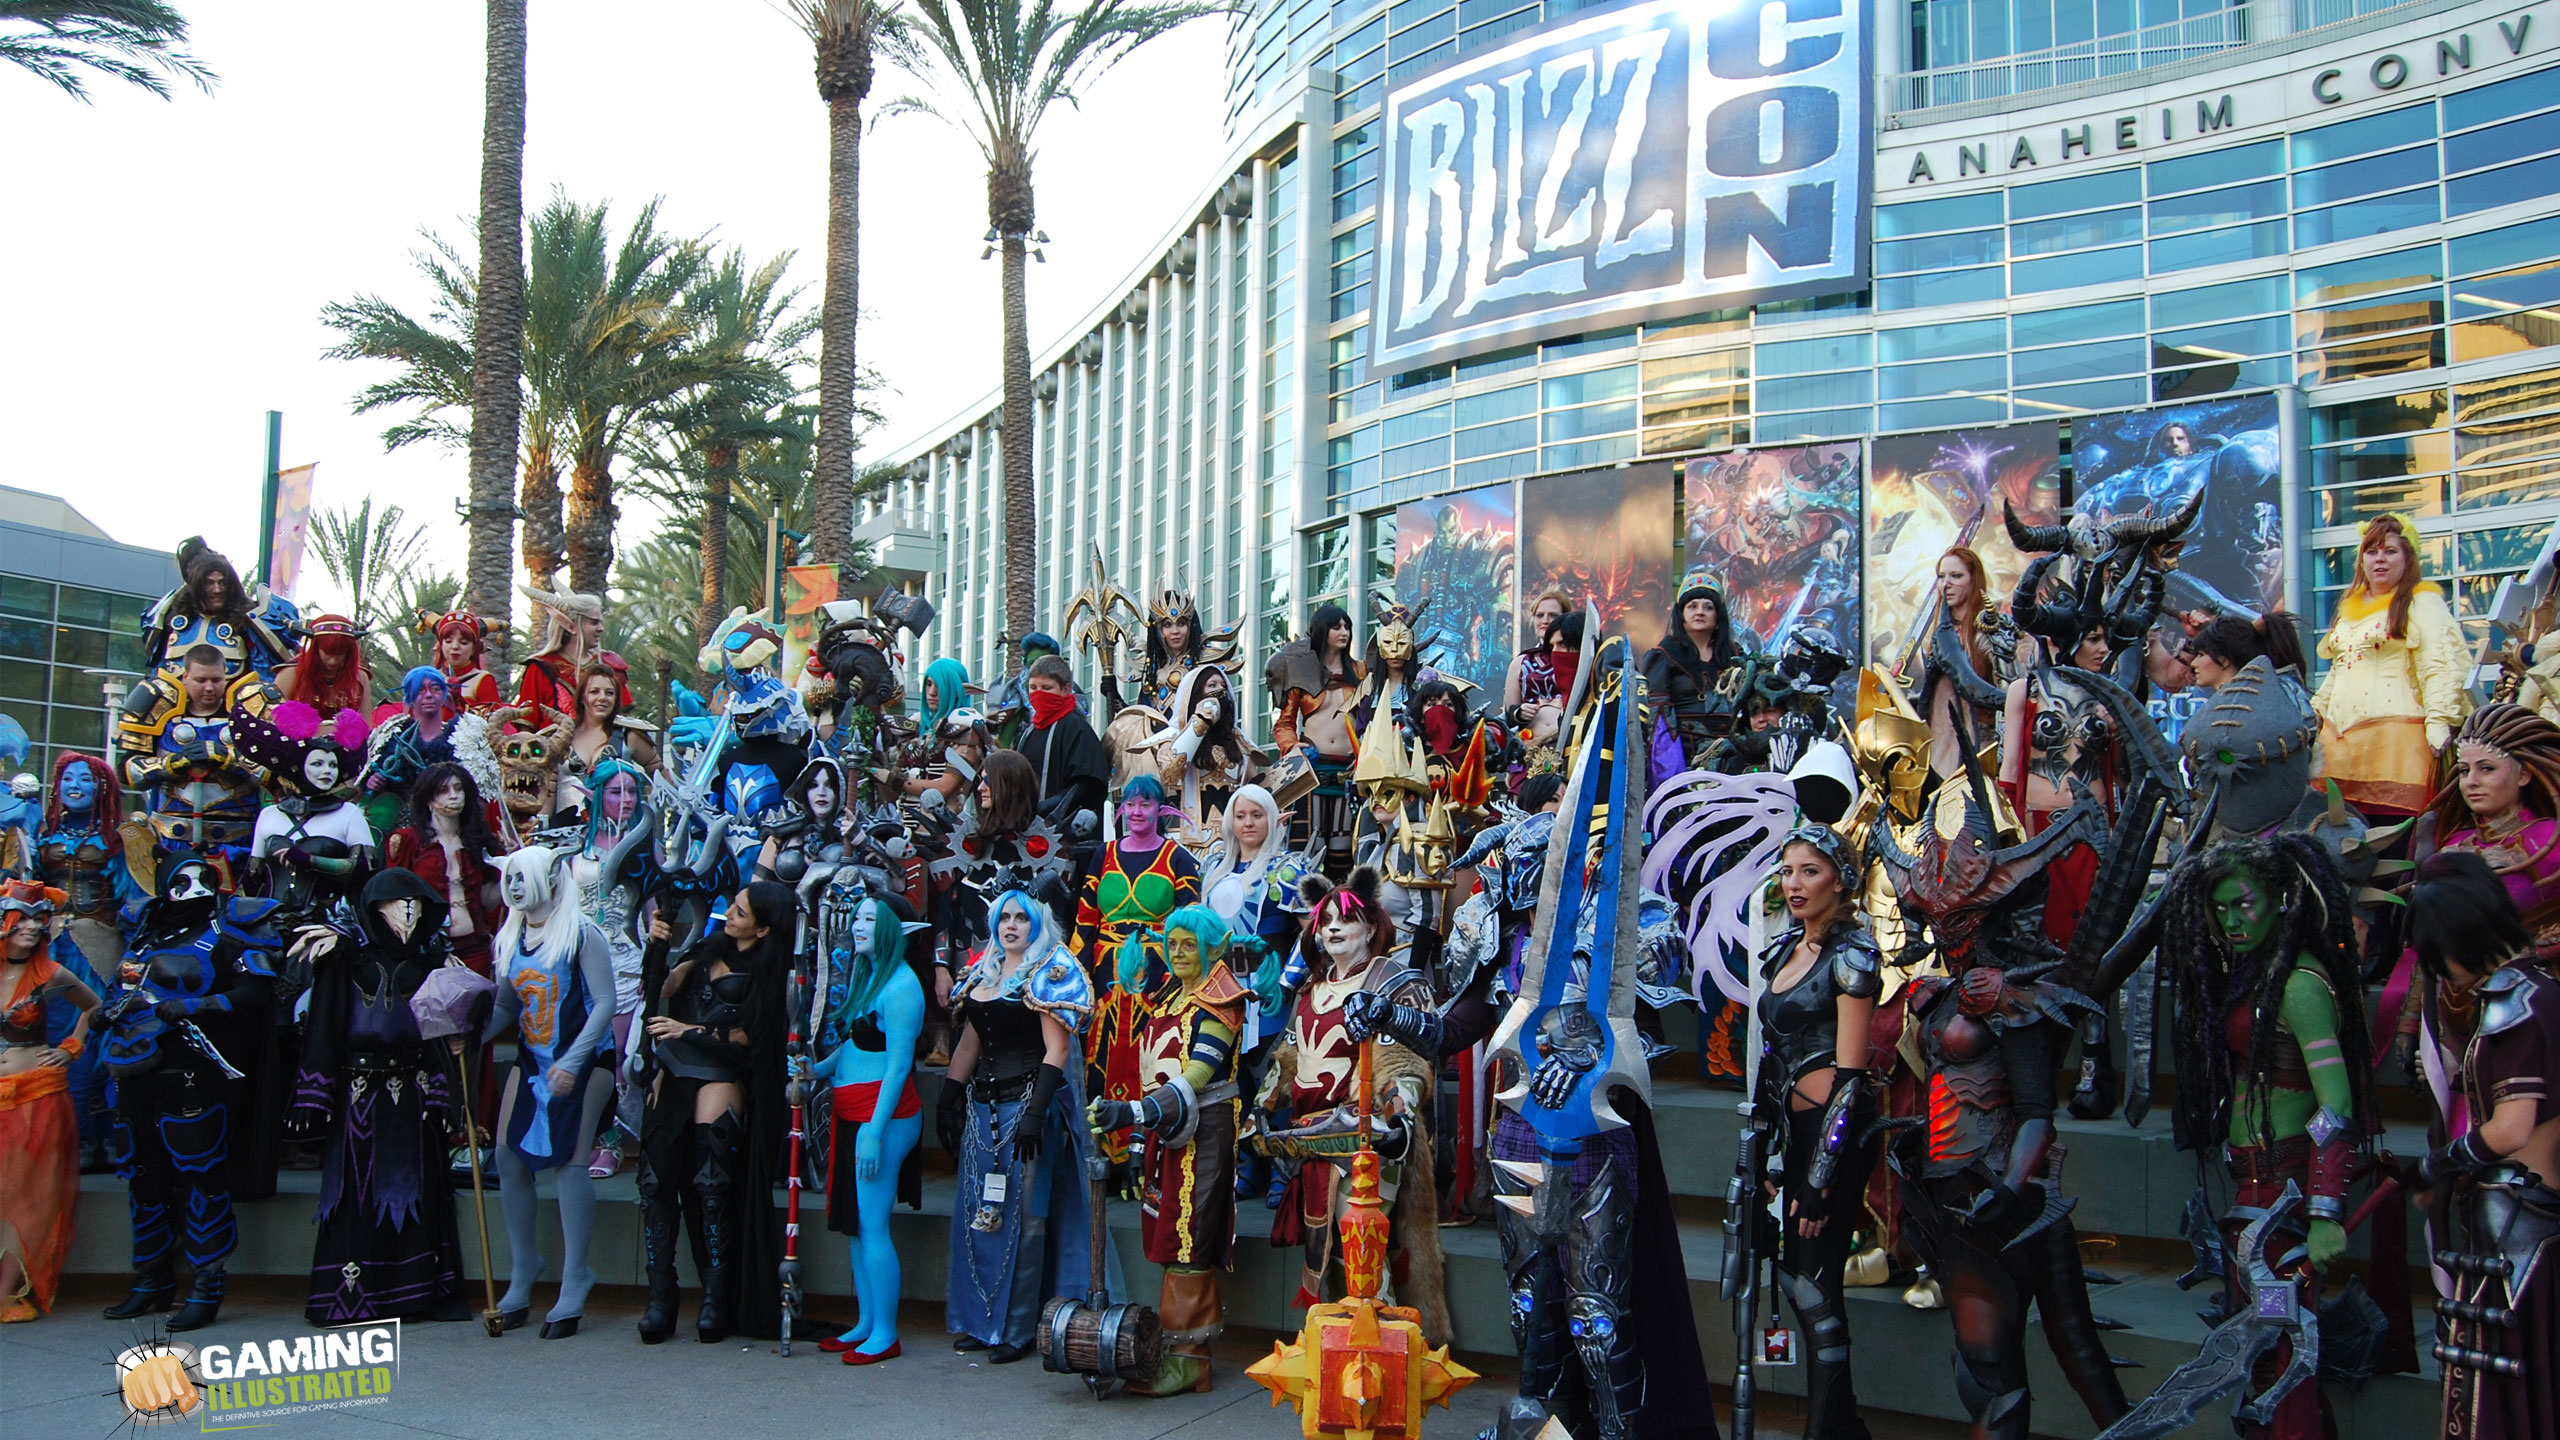 blizzcon-costume-wallpaper-2560x1440